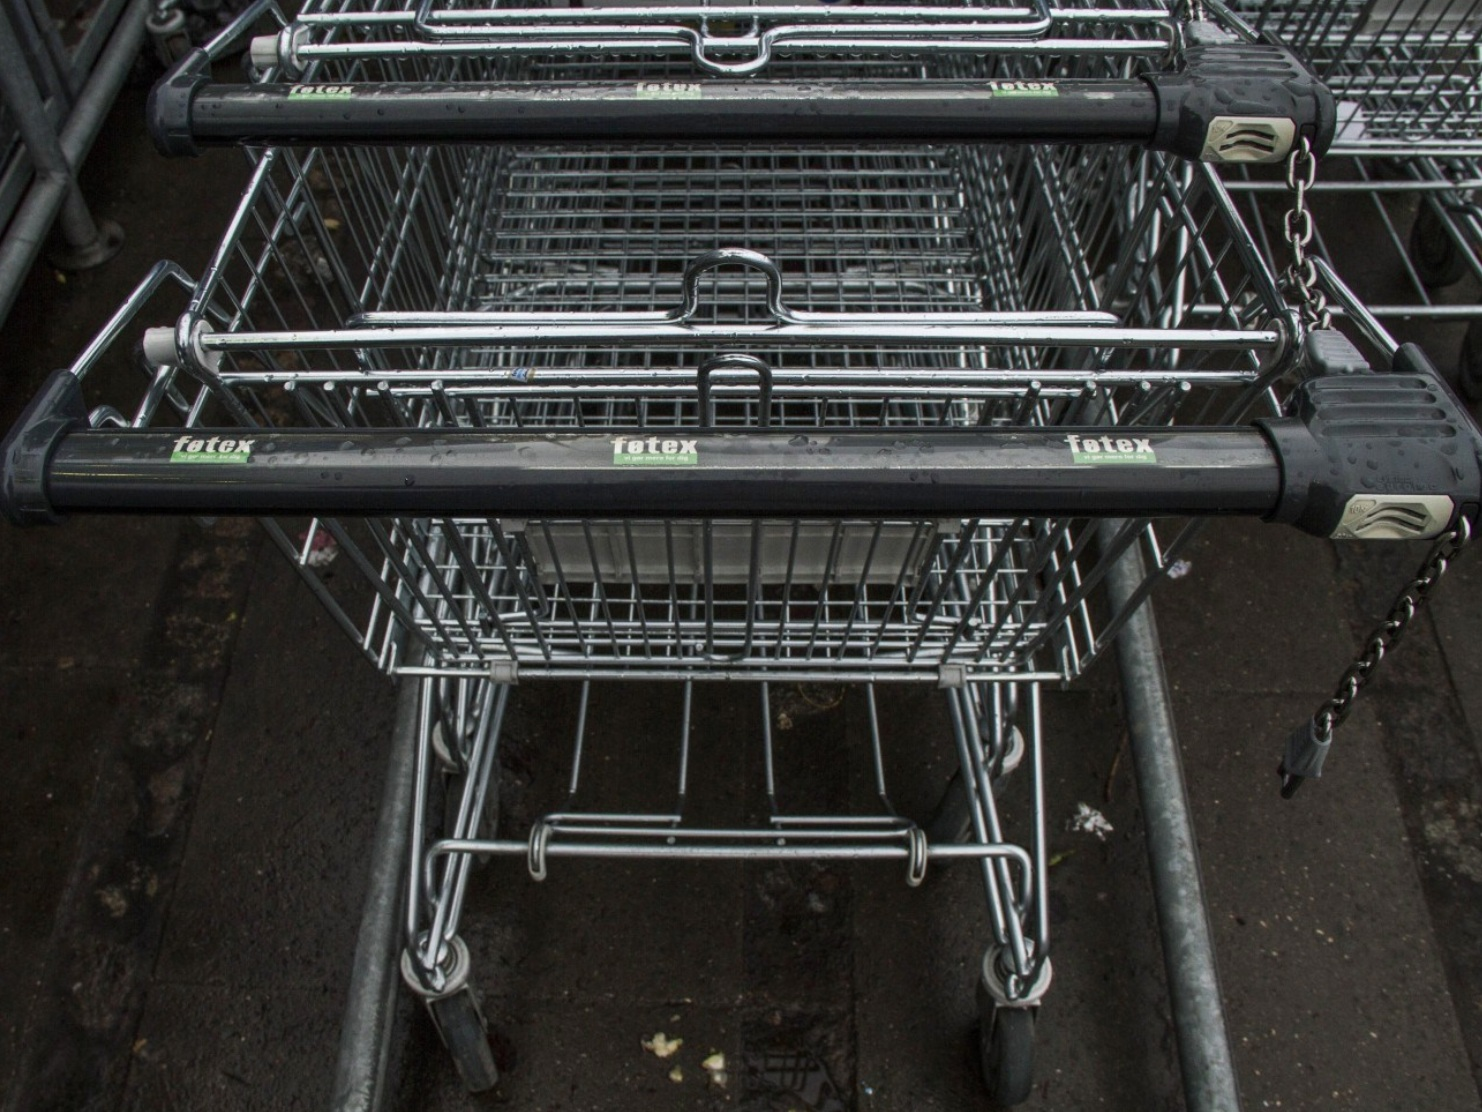 Despite Warnings, about 24,000 kids are hurt annually in shopping cart accidents – The Washington Post